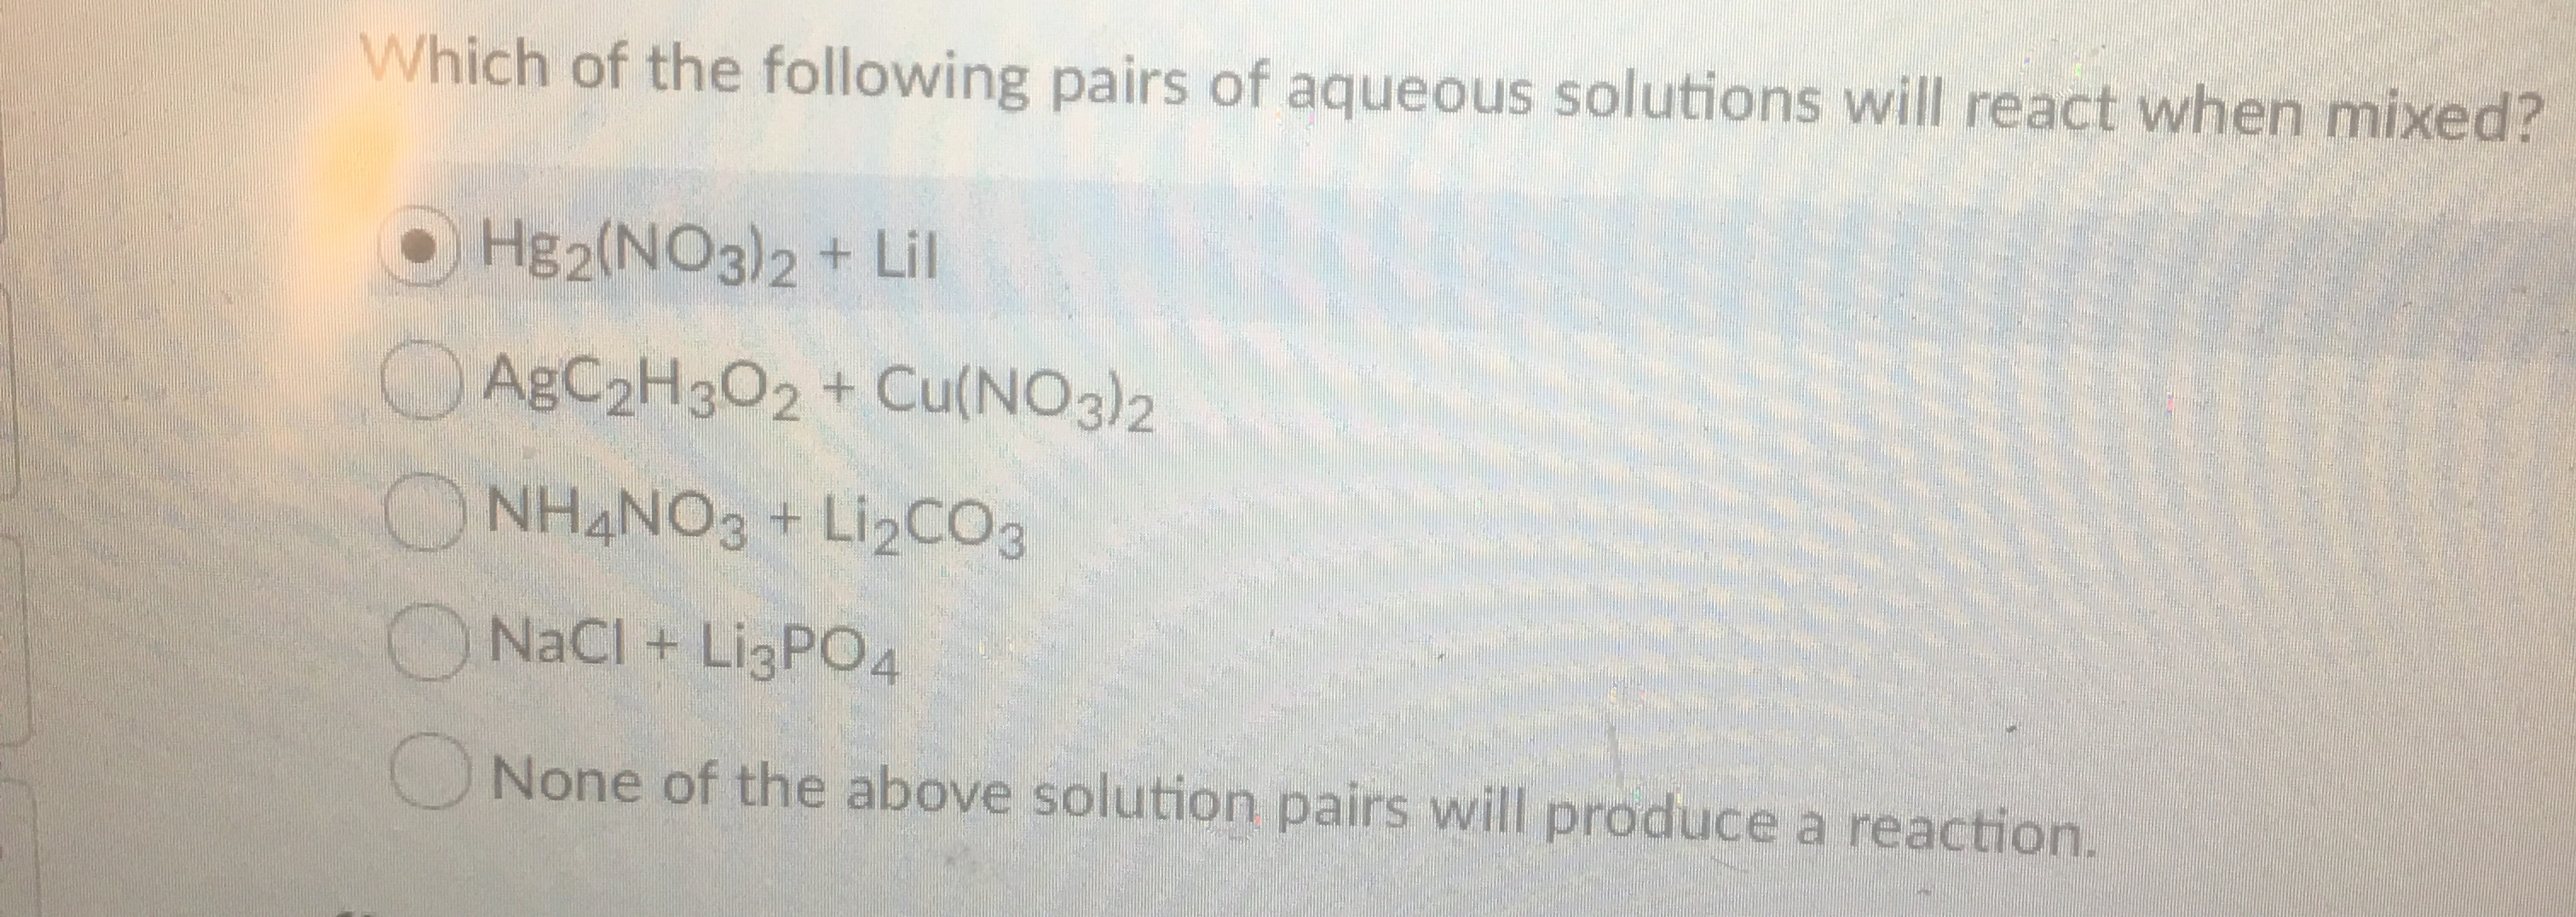 Which of the following pairs of aqueous solutions will react when mixed? Hg2(NO3)2 + Lil AgC2H302 + Cu(NO3)2 NH4NO3+ Li2CO3 NaCl + LI3PO4 None of the above solution pairs will produce a reaction.